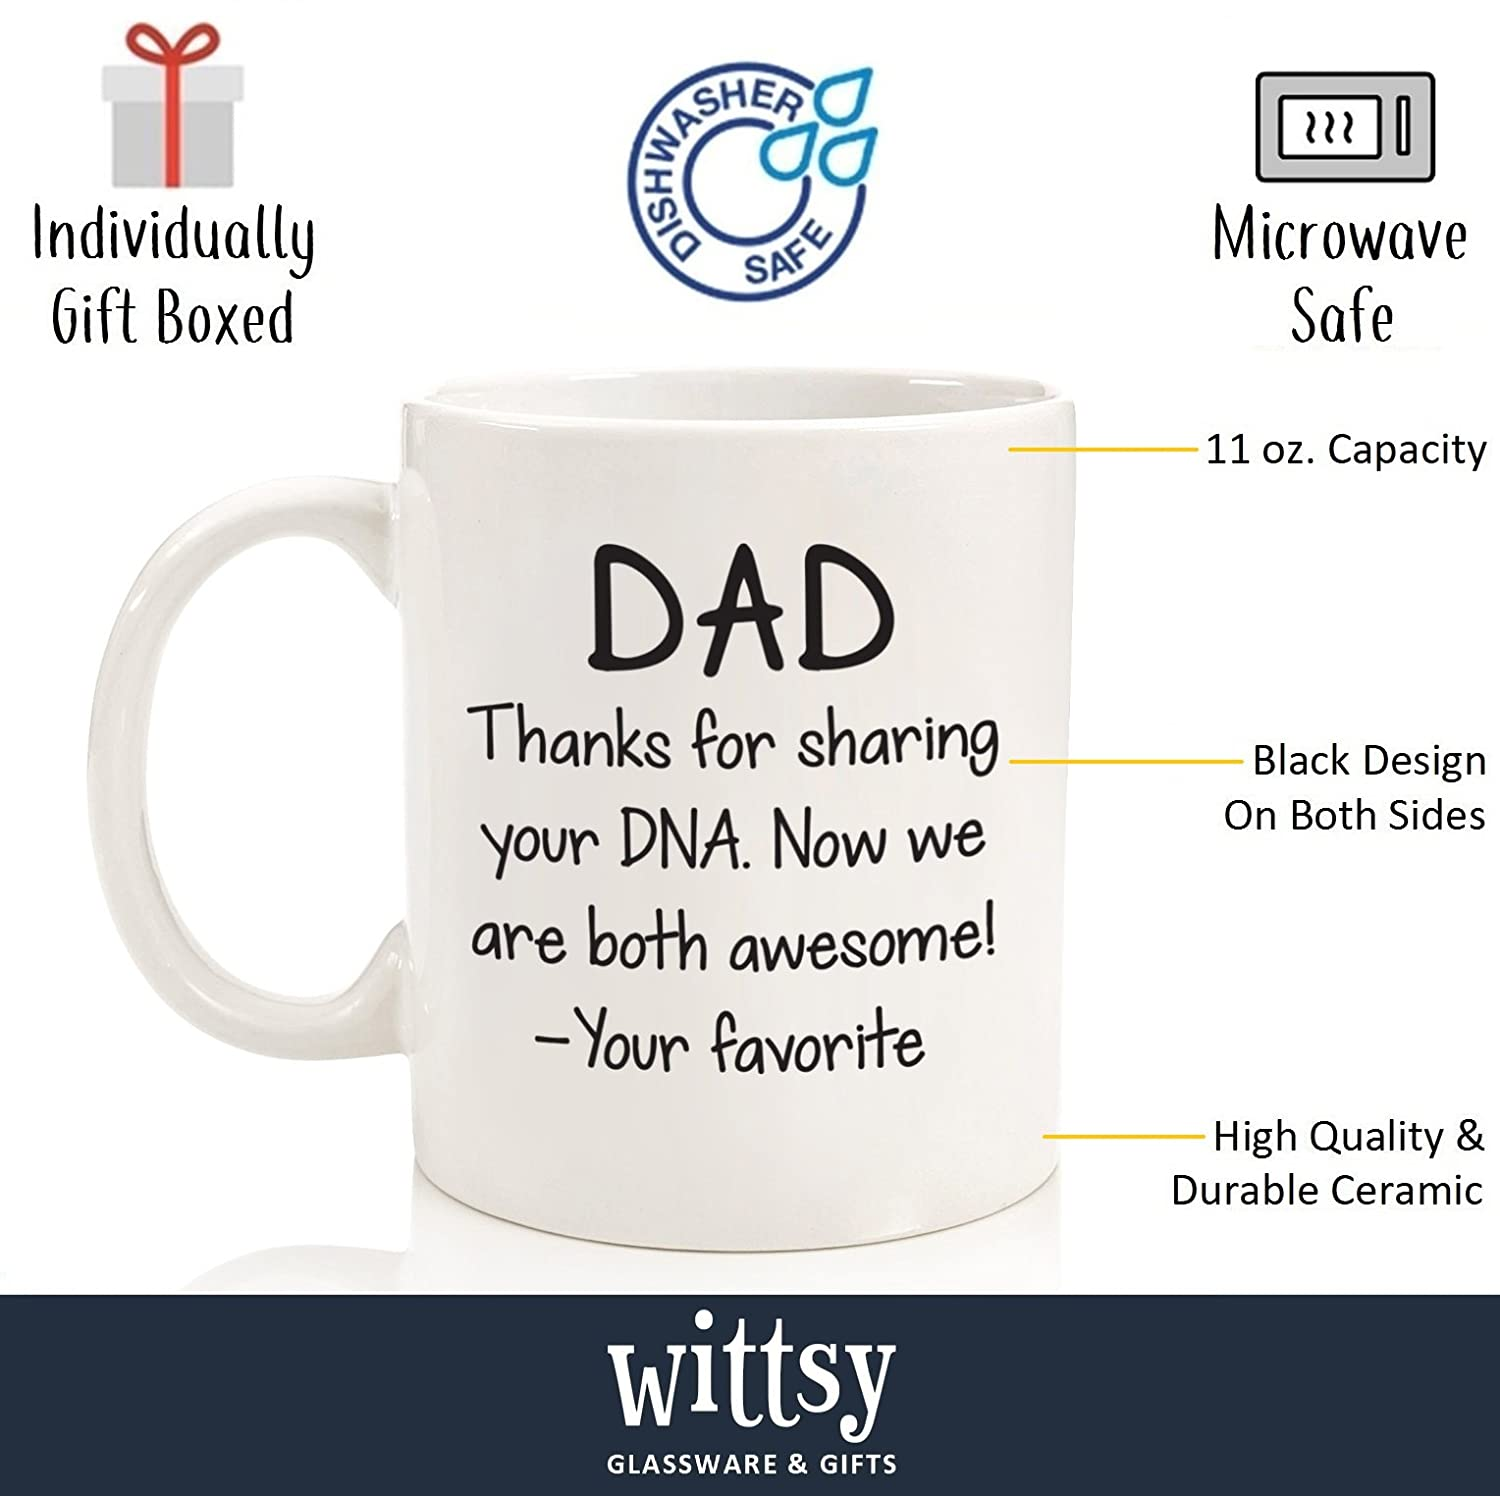 Son Coffee Mug: Thanks For Sharing Your DNA Fun Novelty Cup Wittsy Glassware and Gifts DTFSCM Guys Best Dad Valentines Day Gifts Cool Birthday Present Idea For Men Unique Gag Gift For Him From Daughter Funny Dad Gifts